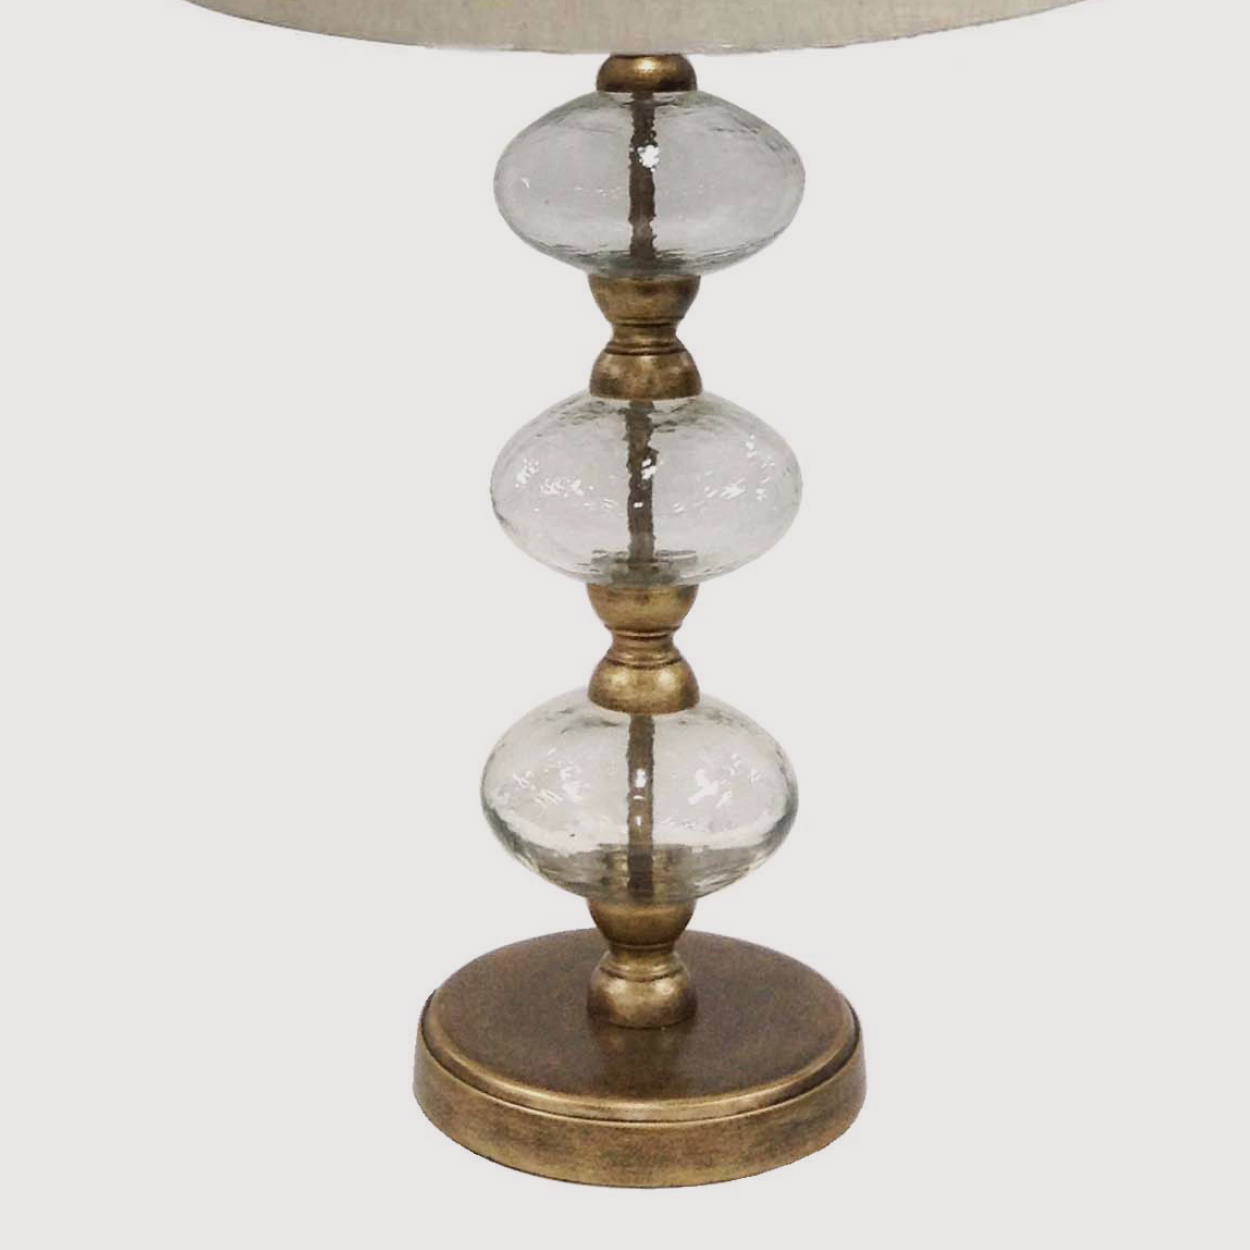 Romana Antique Gold Bubble Lamp with Natural Linen Shade gallery image